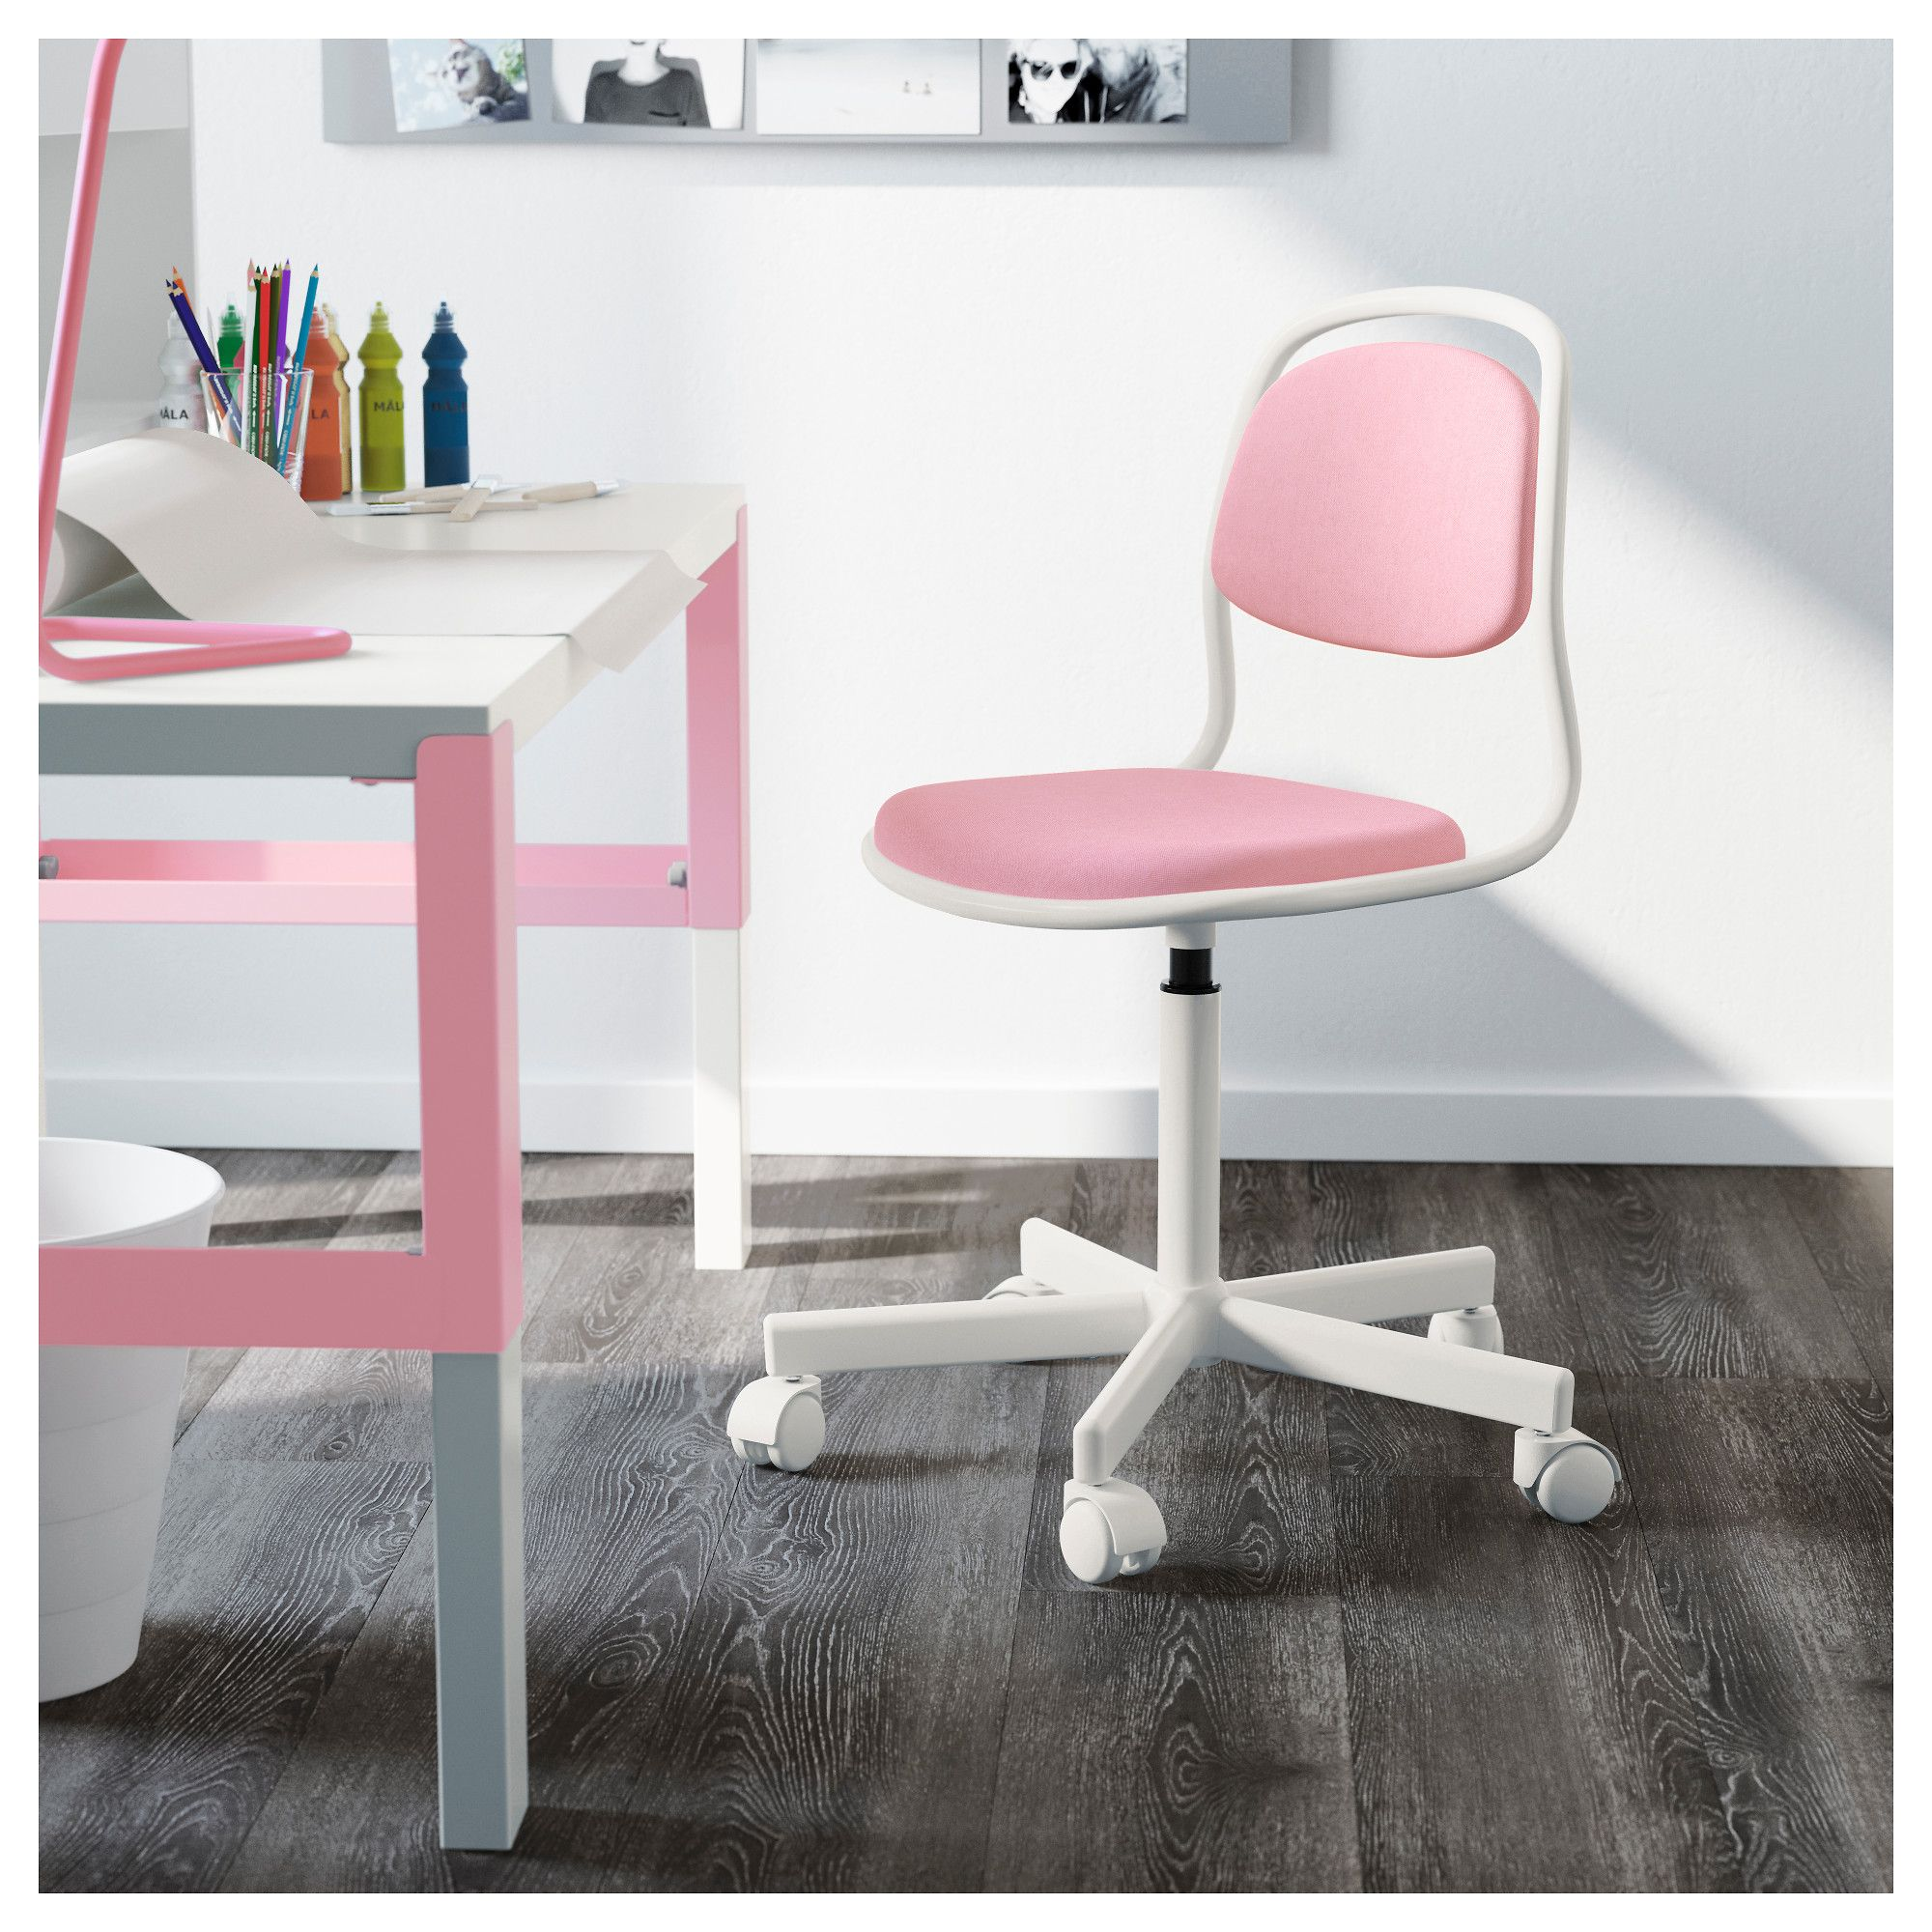 Furniture Home Furnishings Find Your Inspiration Childrens Desk And Chair Diy Chair Desk Chair Diy